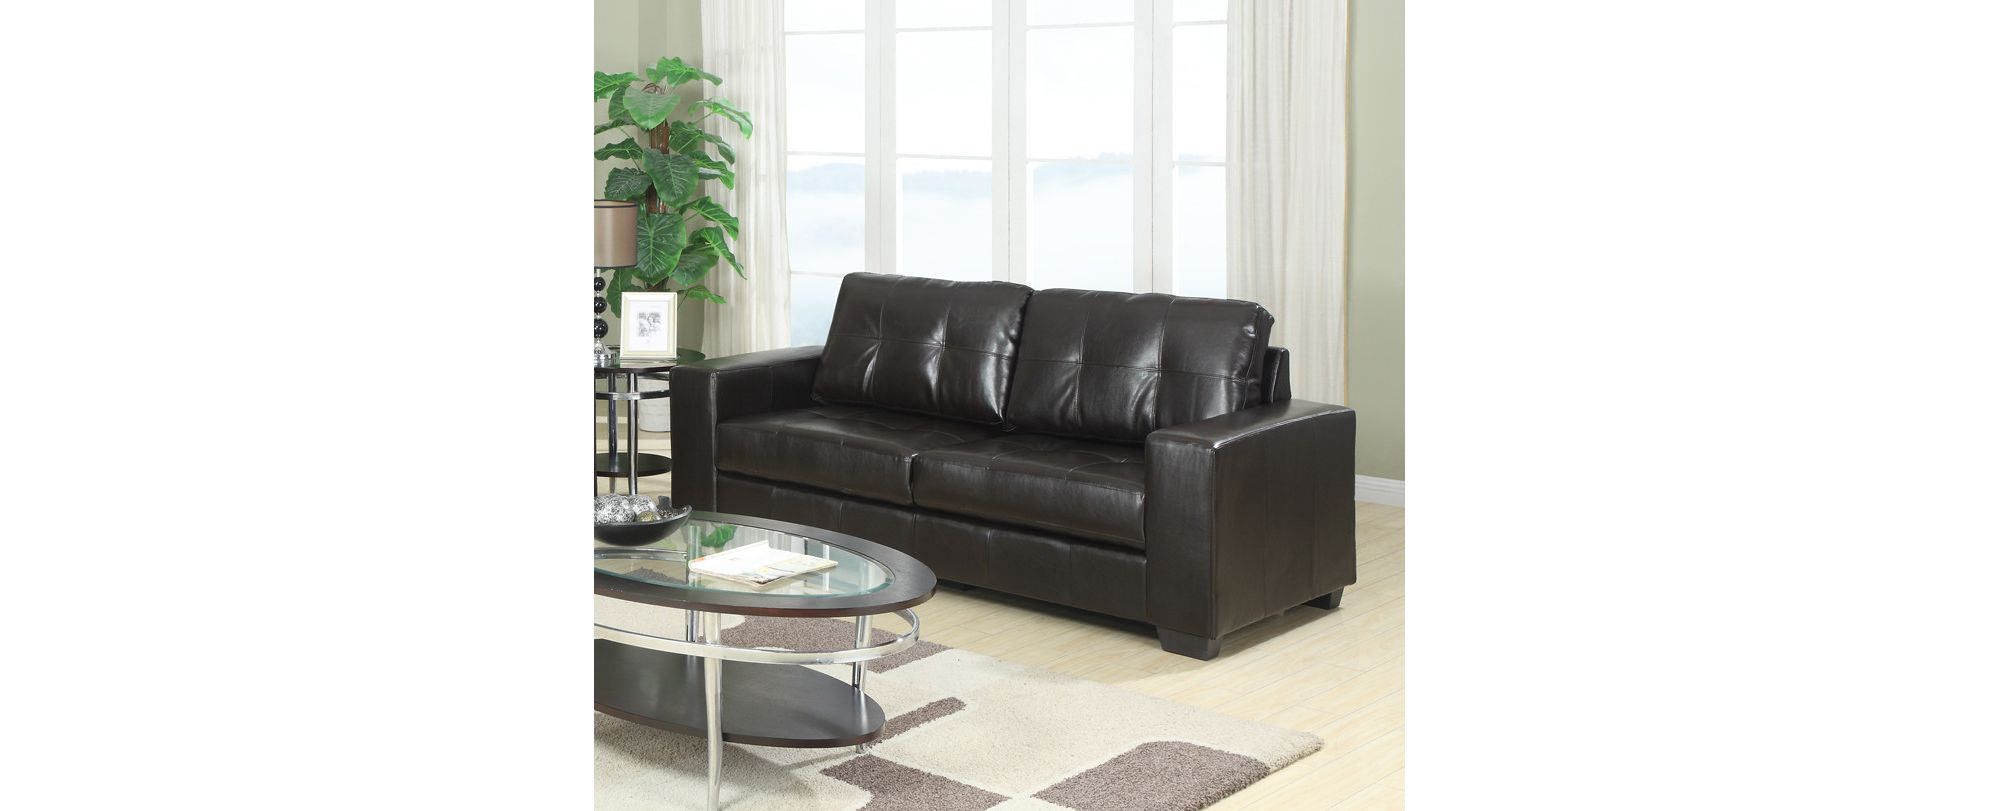 Leather Sofas Corner Sofas Sofa Beds Chesterfield  : 720 1562PI1000015MNwid2000amphei2000 from www.leathersofas.org.uk size 2000 x 2000 jpeg 107kB